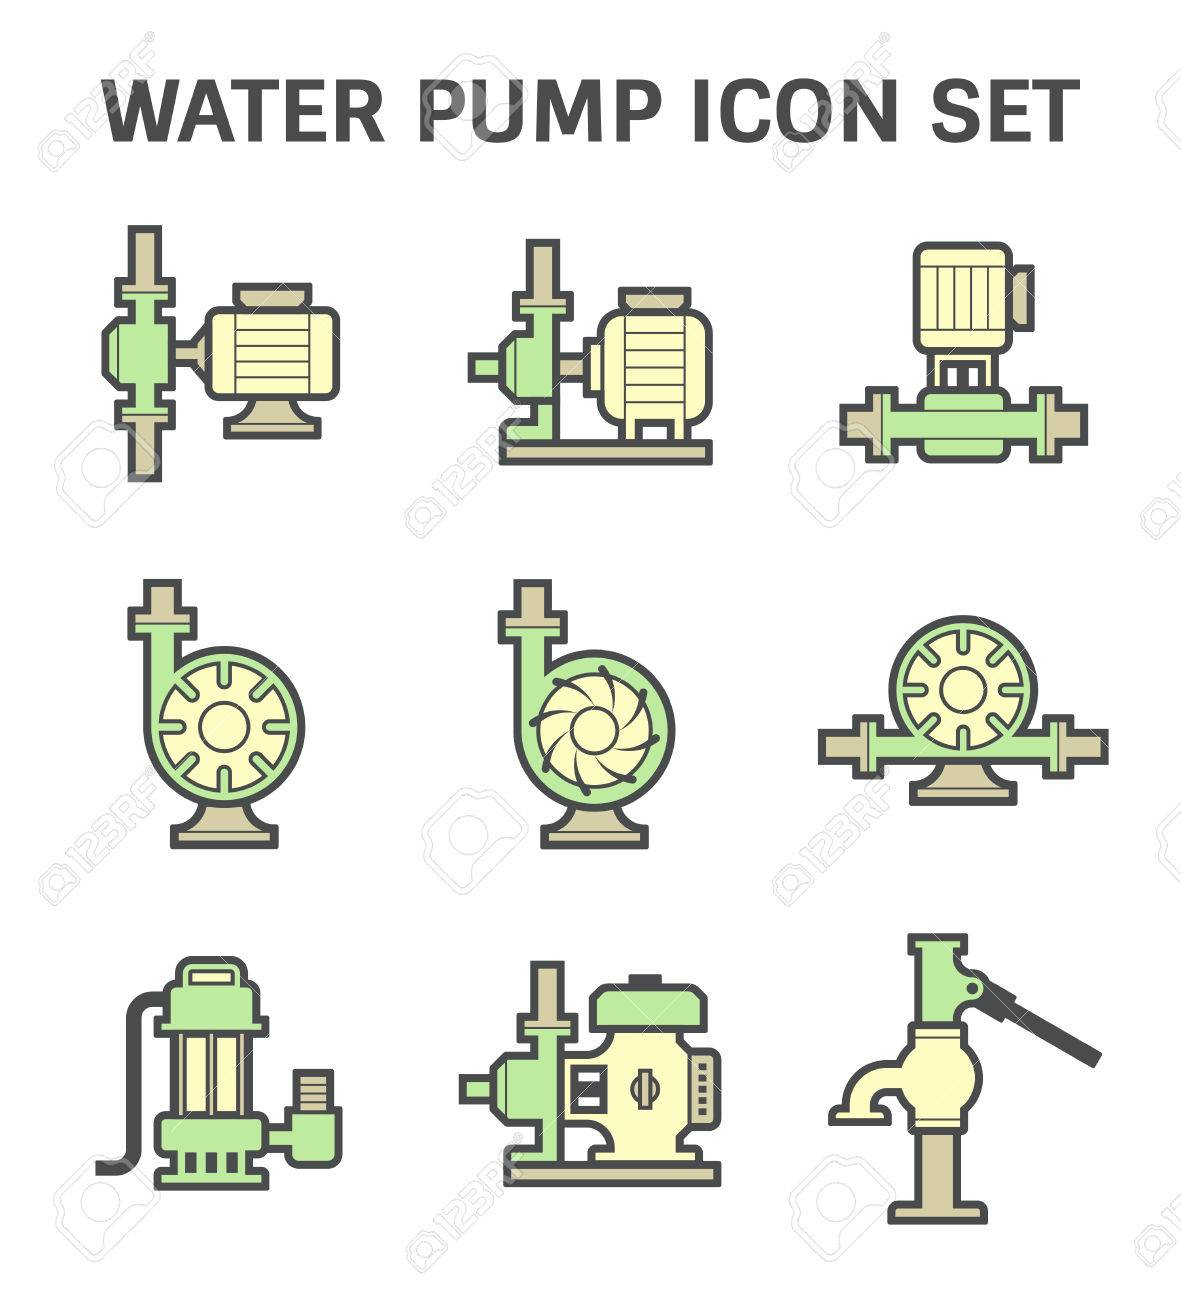 Water pump vector icon set isolated on white background royalty vector water pump vector icon set isolated on white background ccuart Image collections